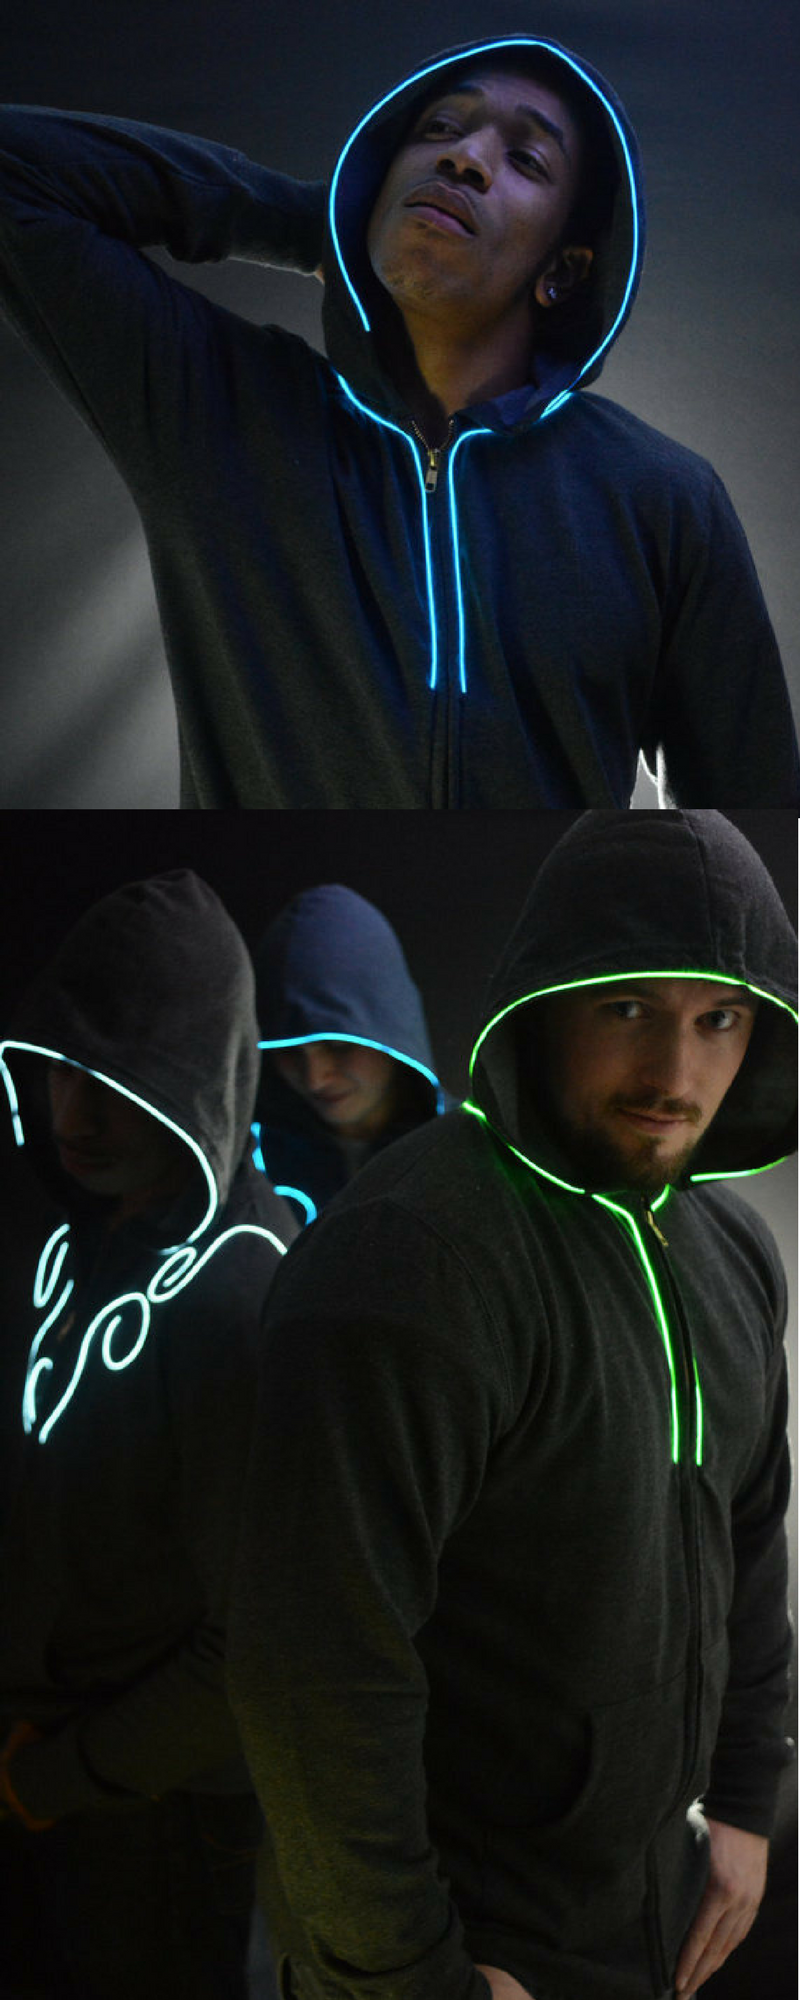 Light up hoodie Led Hoodie with EL wire By NEO LUX -Spector- (led ...